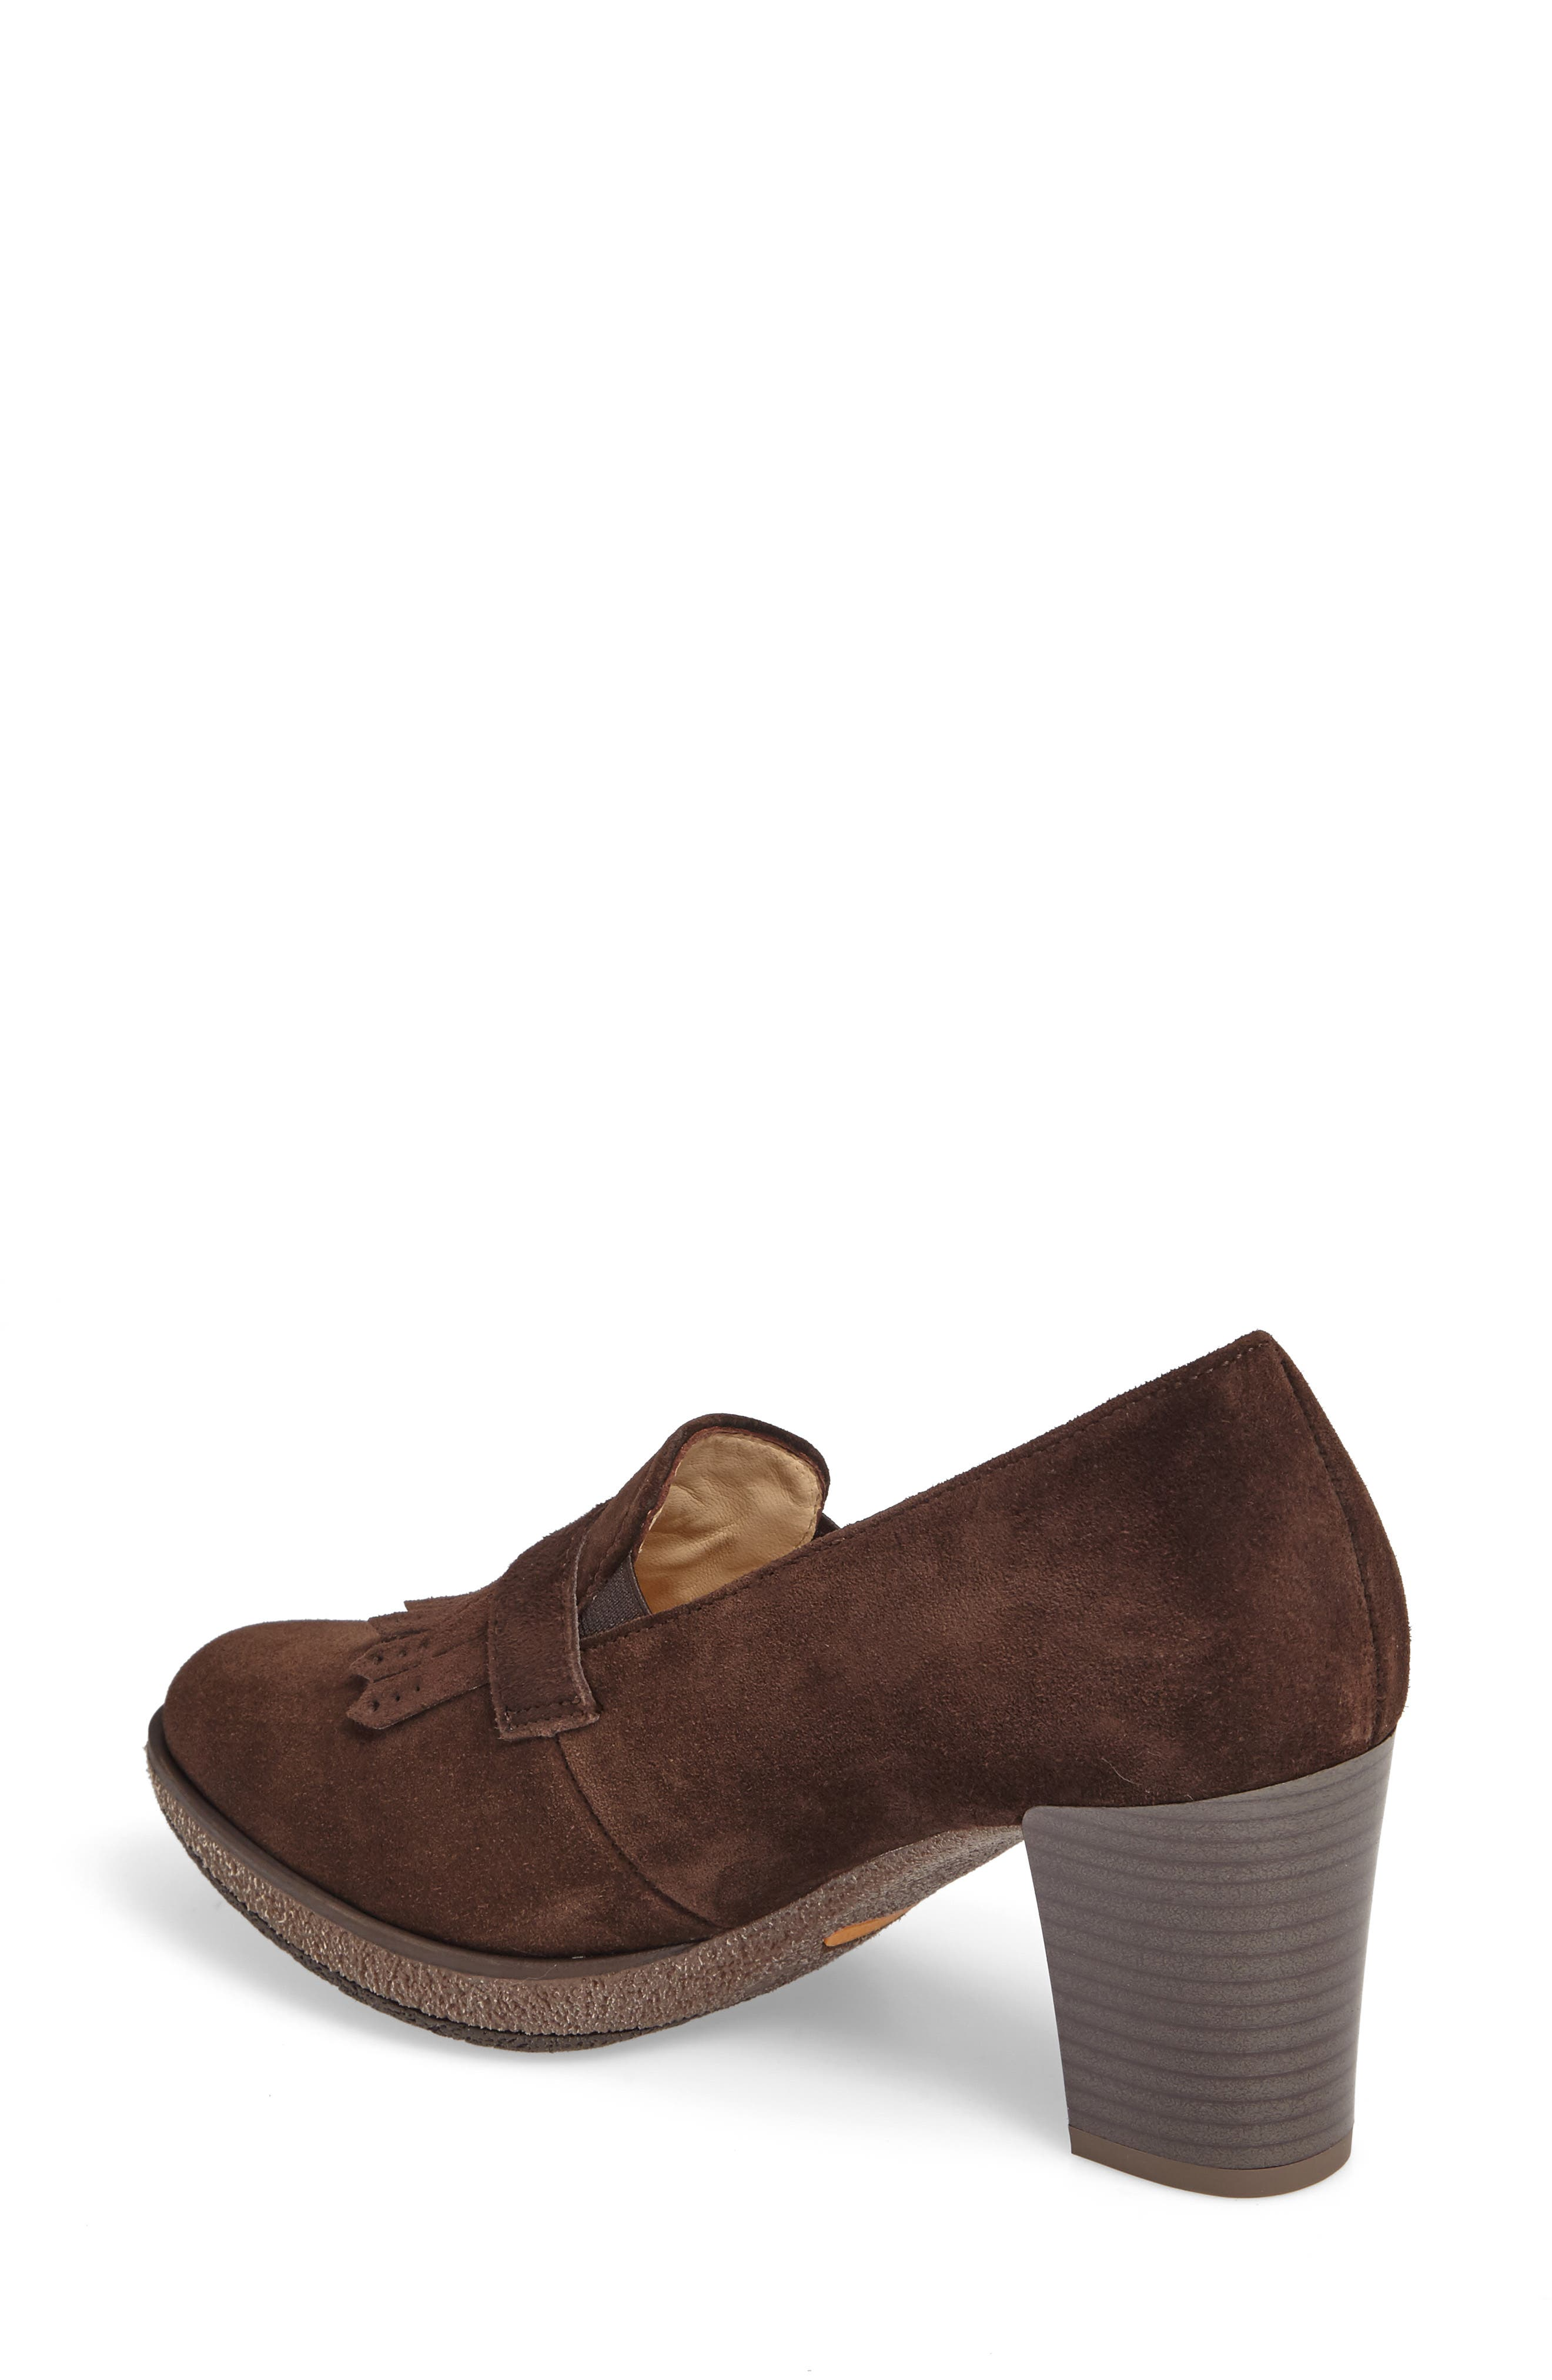 ARA, Becky Loafer Pump, Alternate thumbnail 2, color, BROWN SUEDE